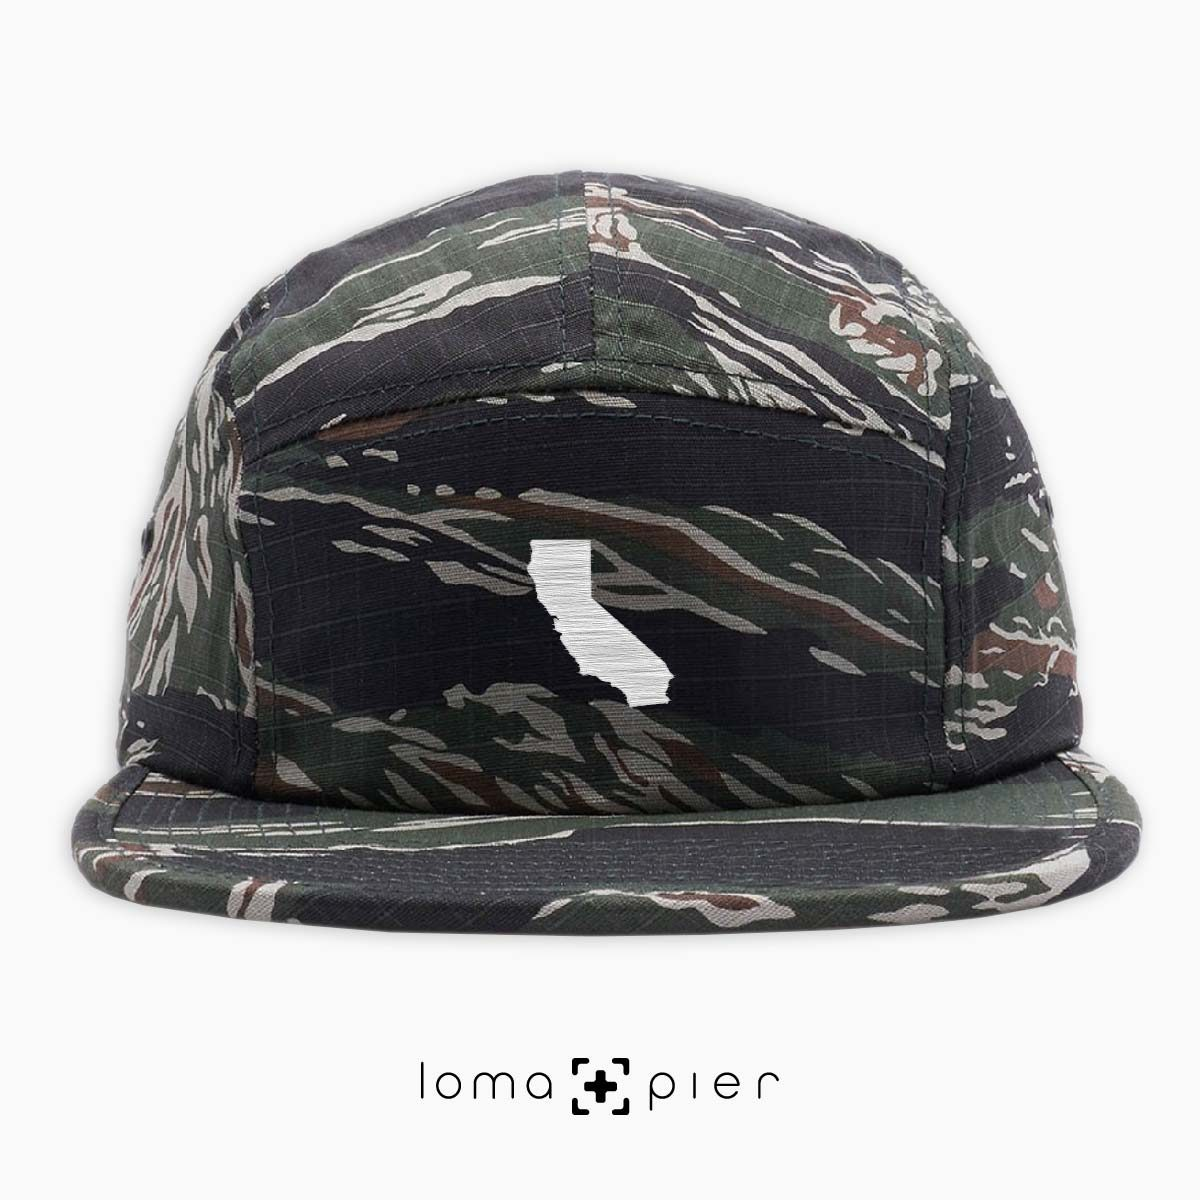 CALIFORNIA silhouette icon embroidered on a tiger camo cotton 5-panel hat by loma+pier hat store